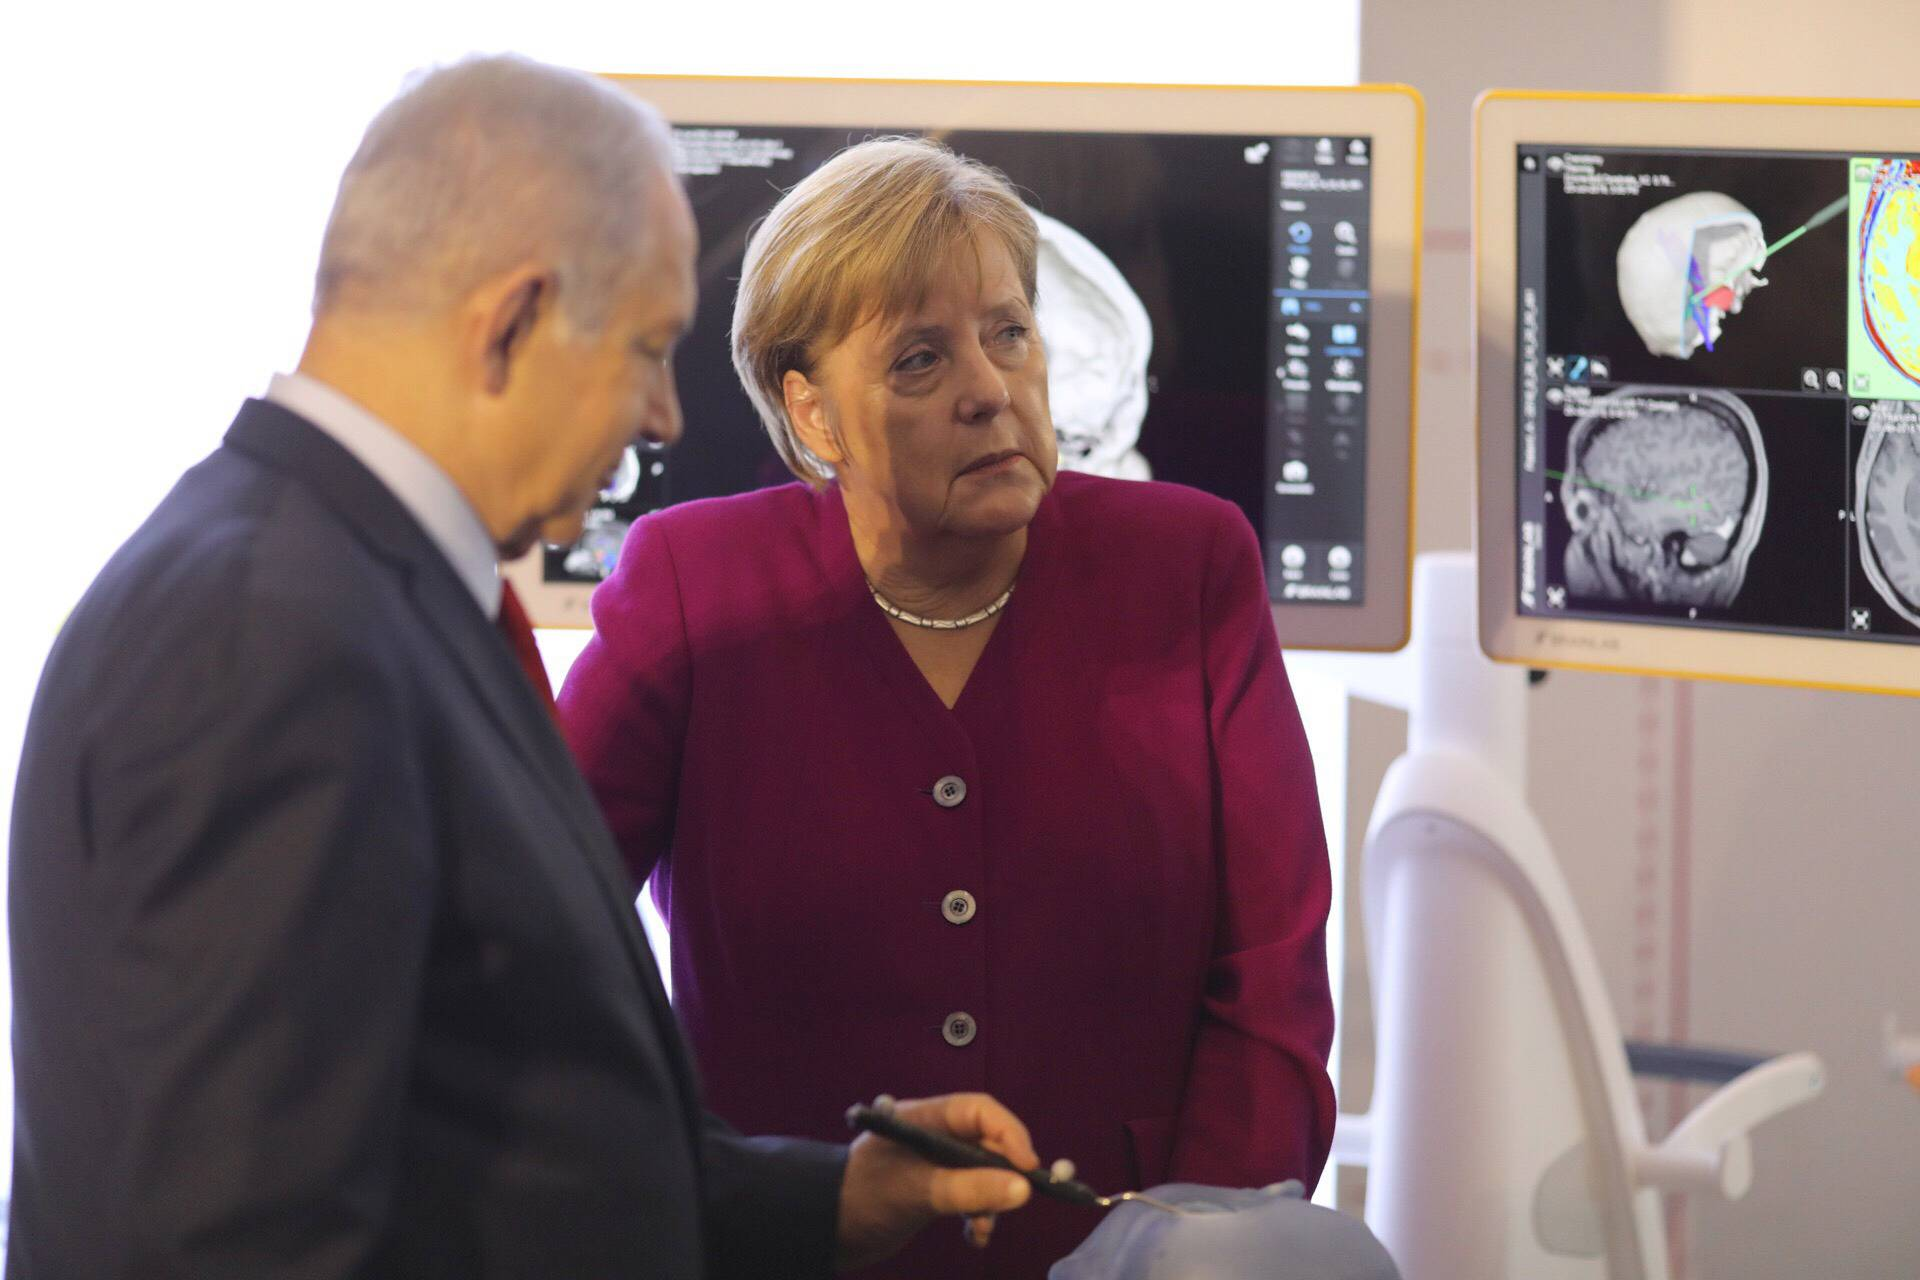 German Chancellor Angela Merkel visits Jerusalem